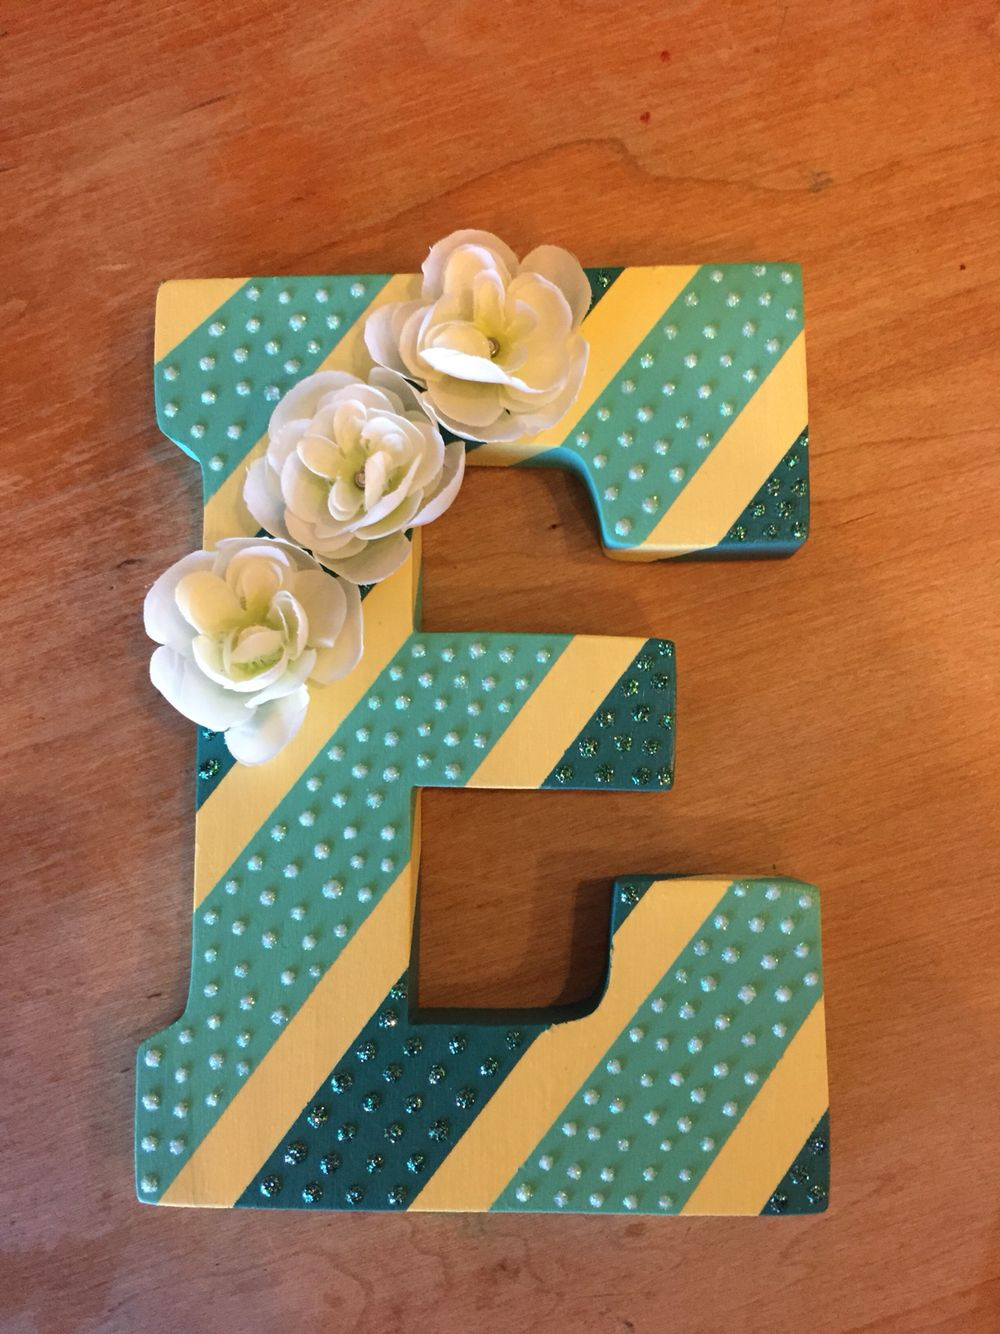 Diy Wall Art Painted Wooden Letter With Stripes Glitter And